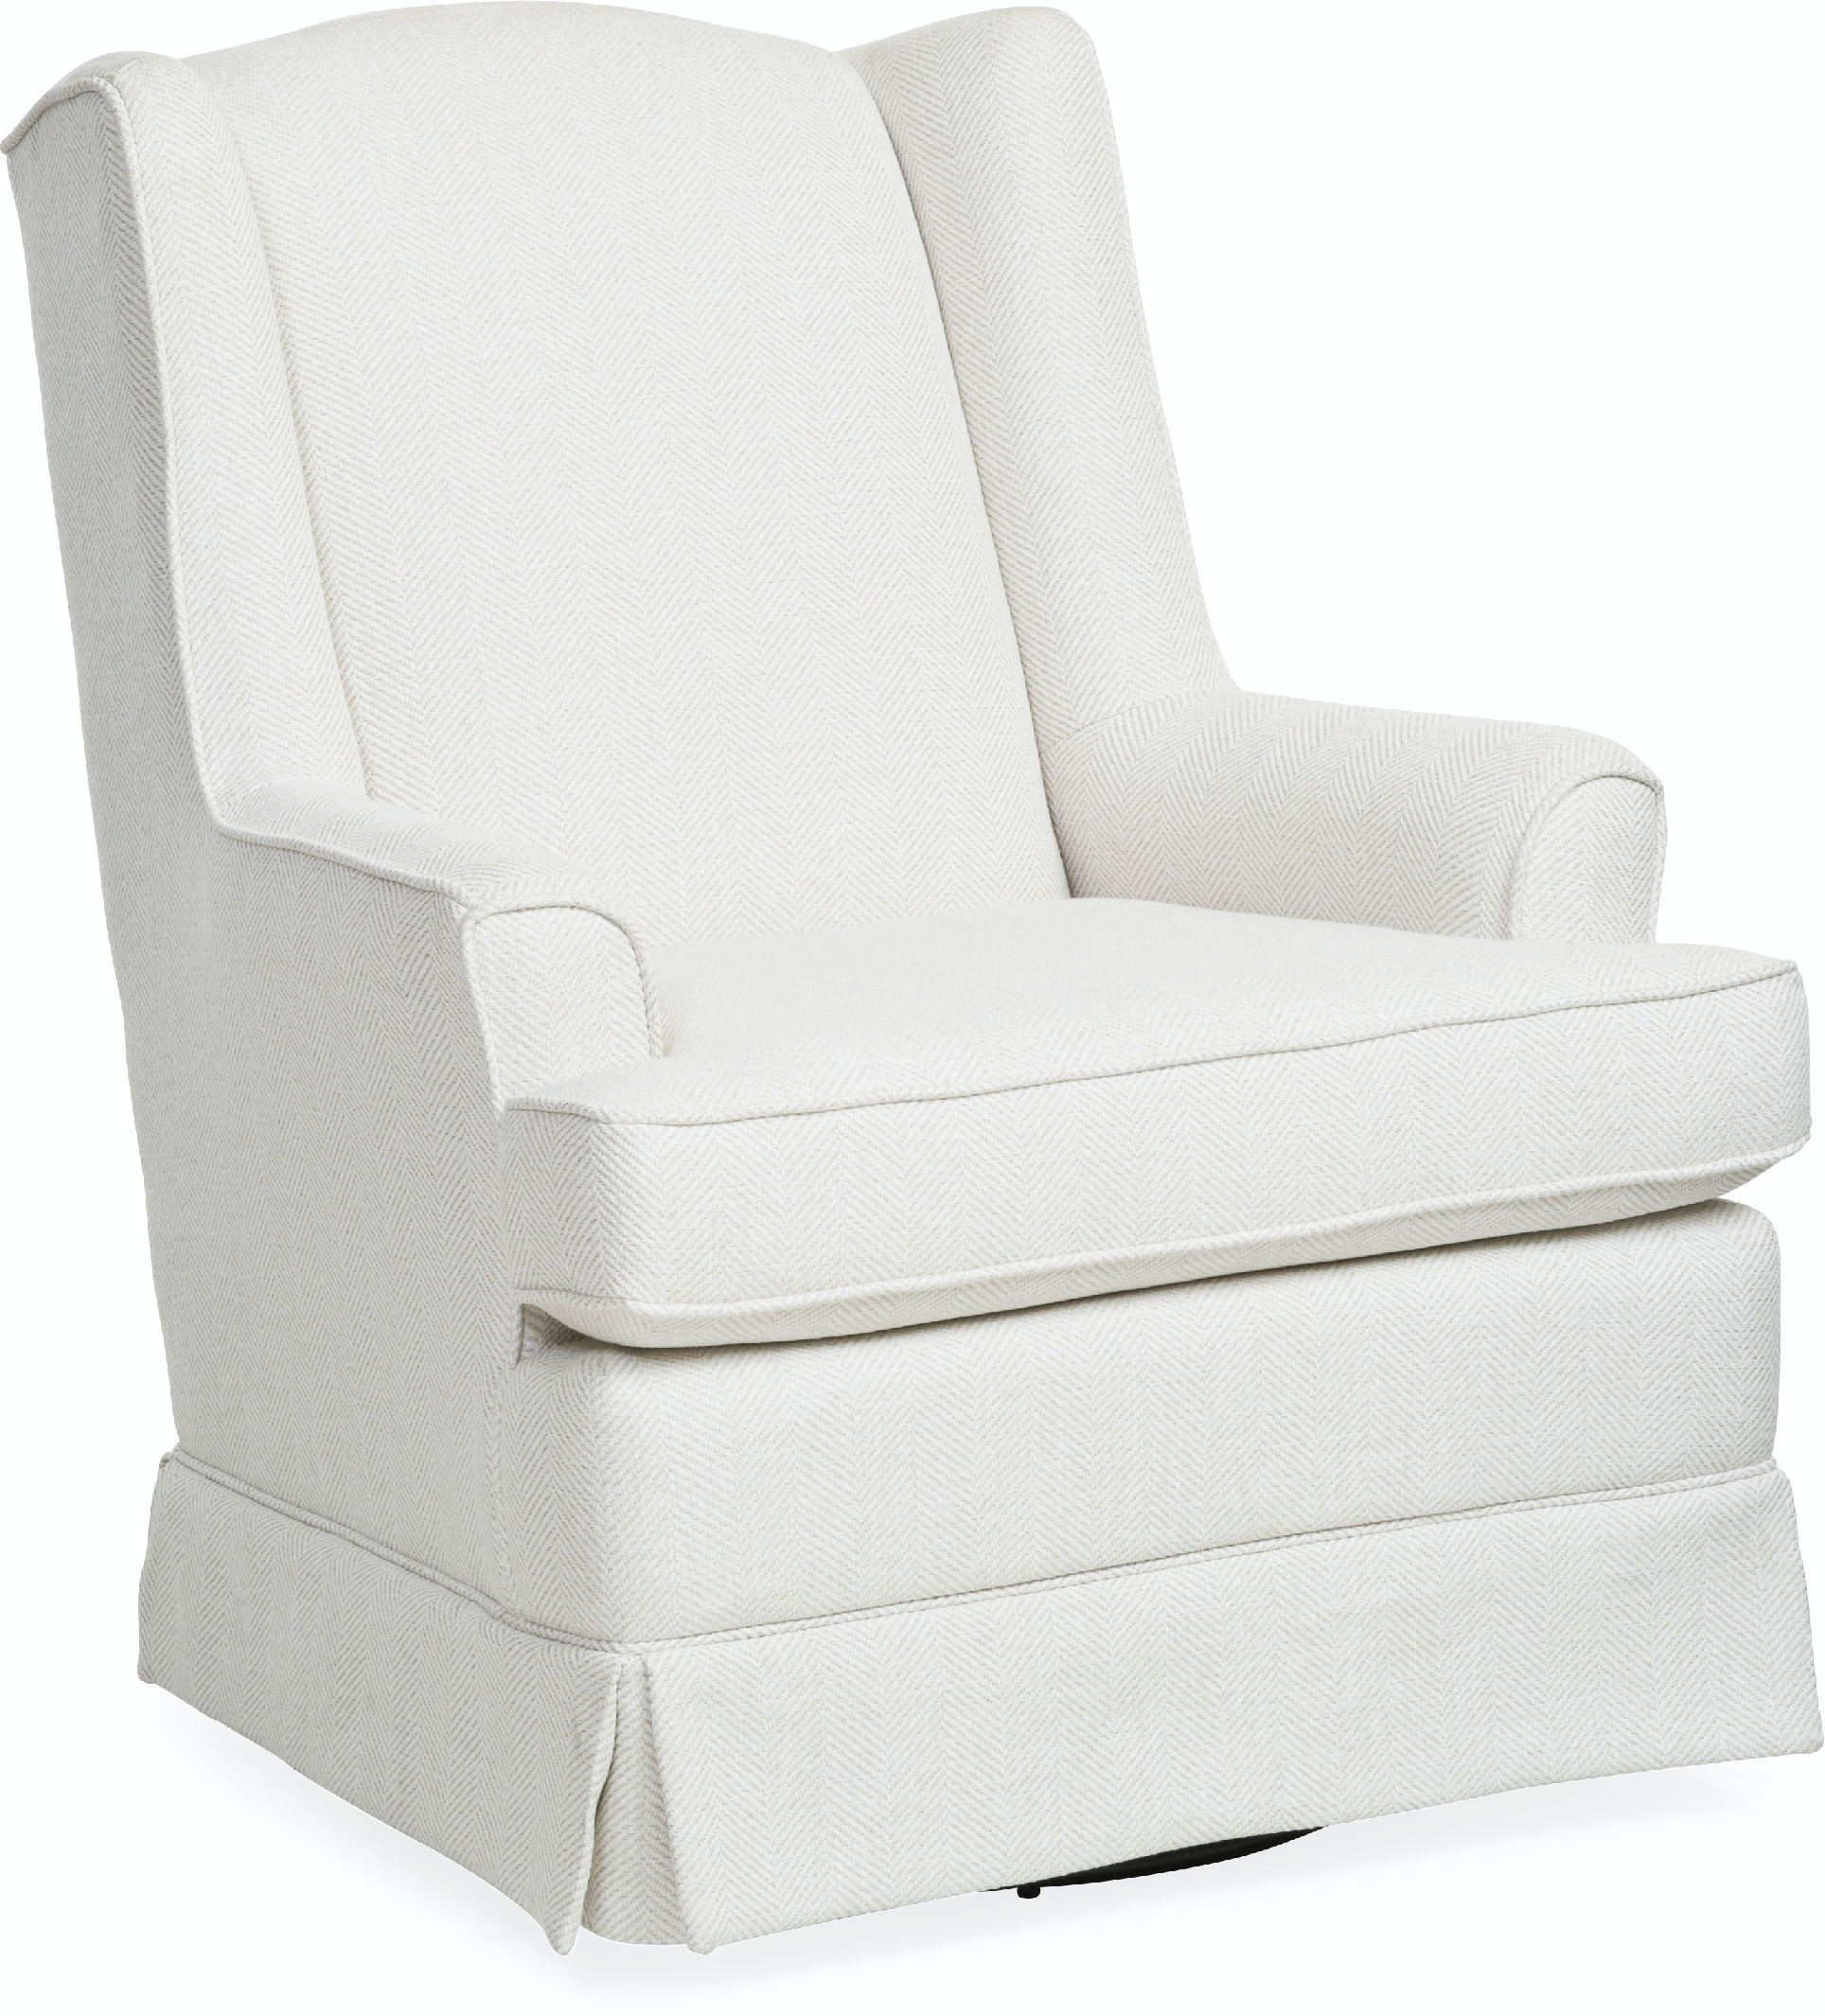 Baby Natasha Swivelglider Wingback Chair